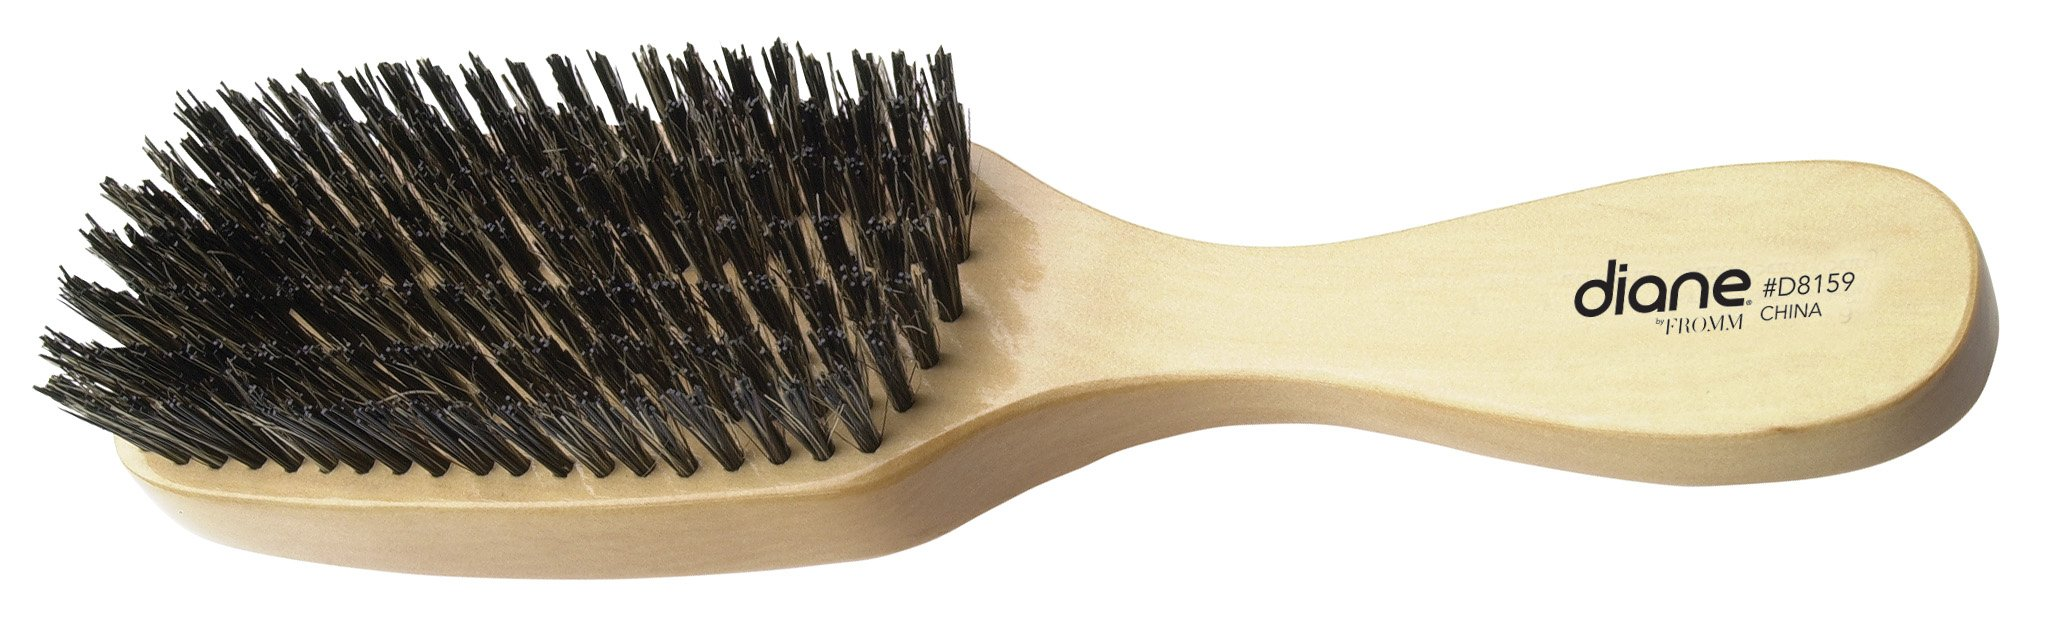 Diane Boar Reinforced Wave Brush, D8159